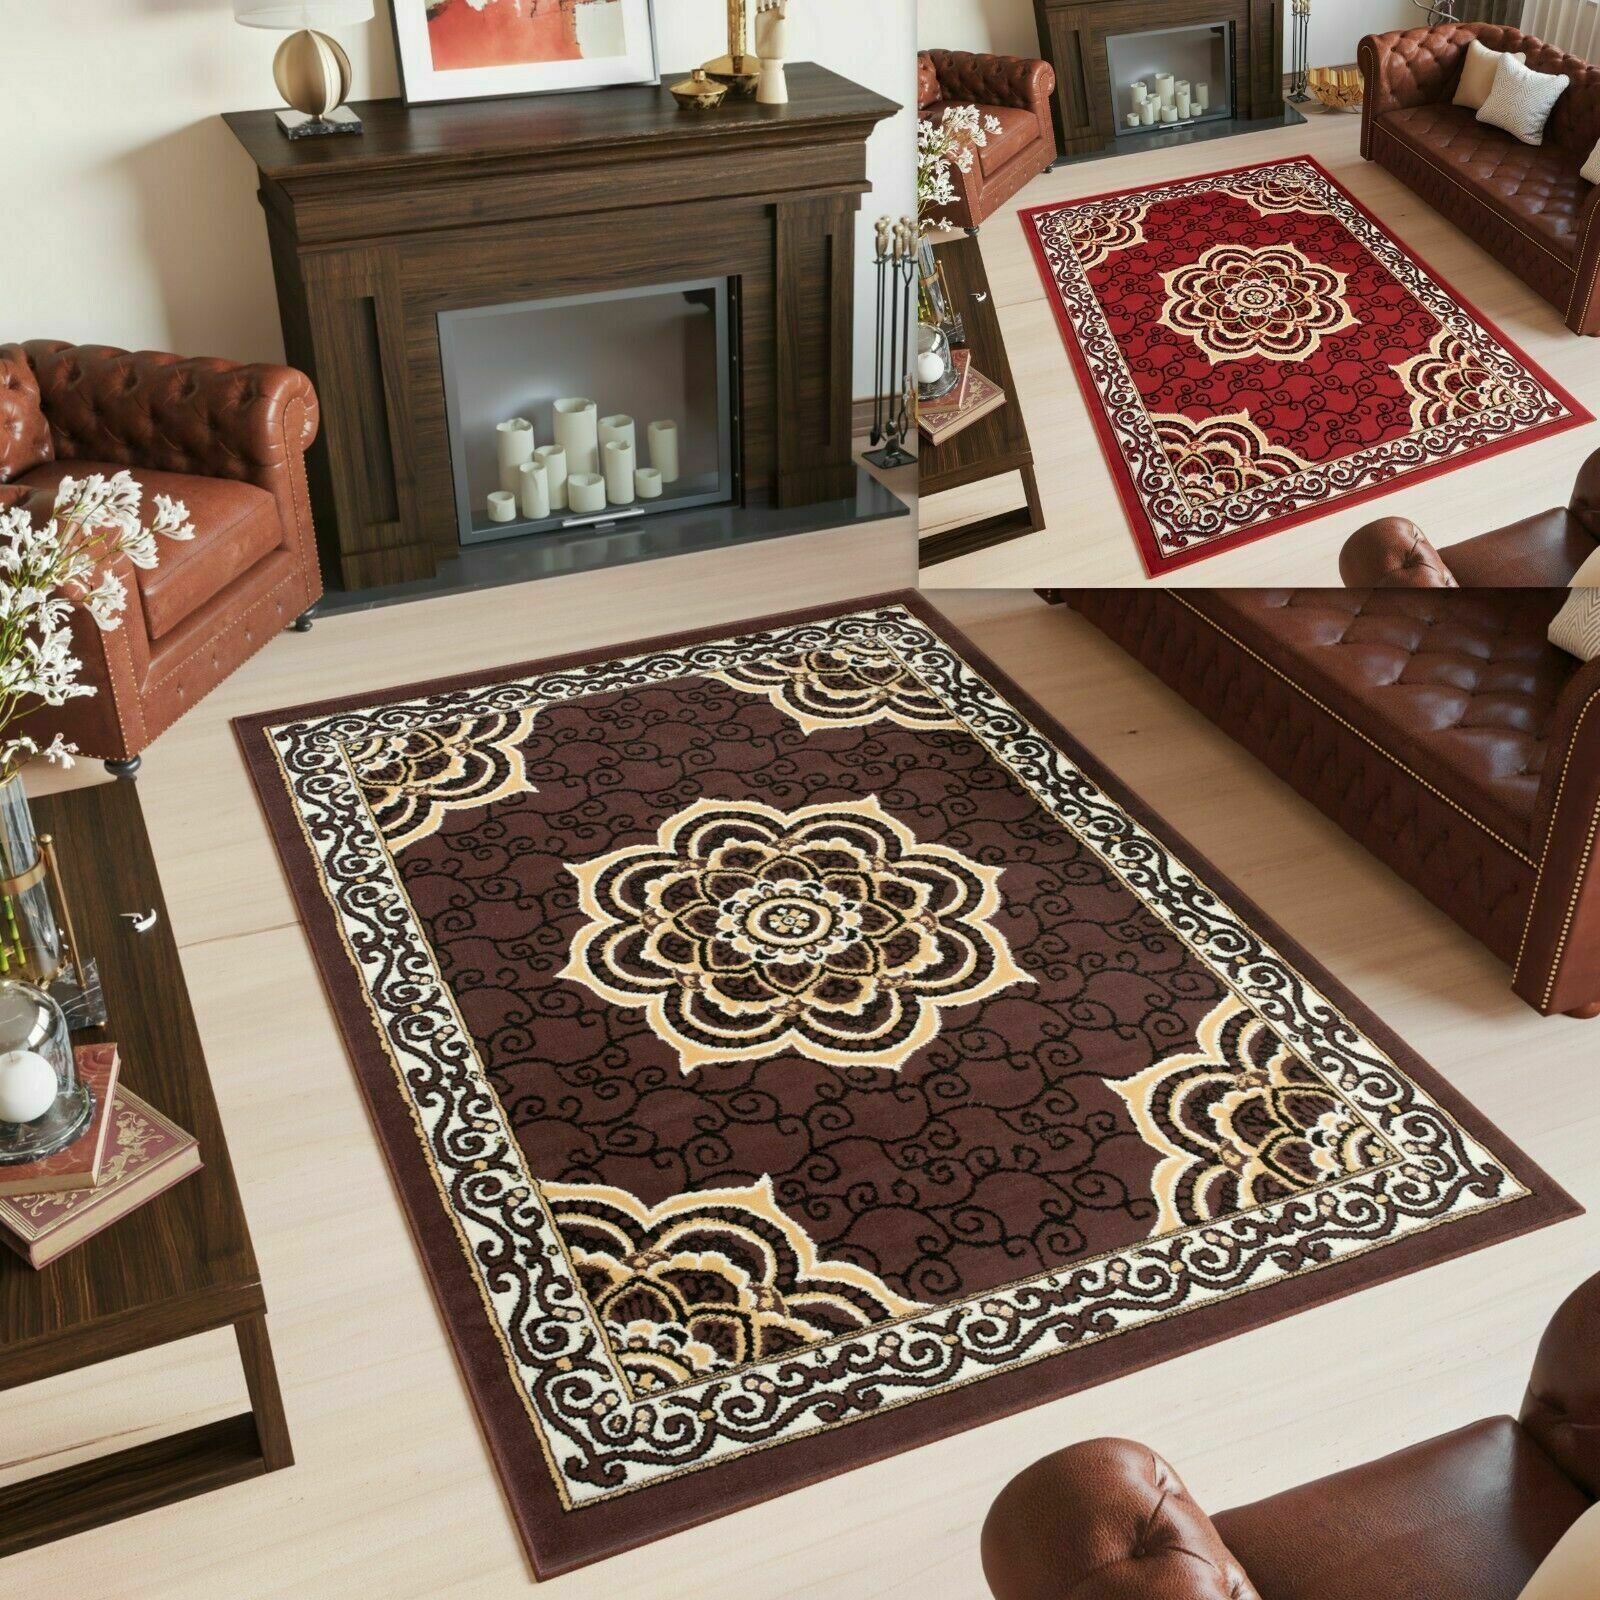 Classic Red Burgundy Area Rugs Traditional Design Ornaments Living Room Carpet Ebay